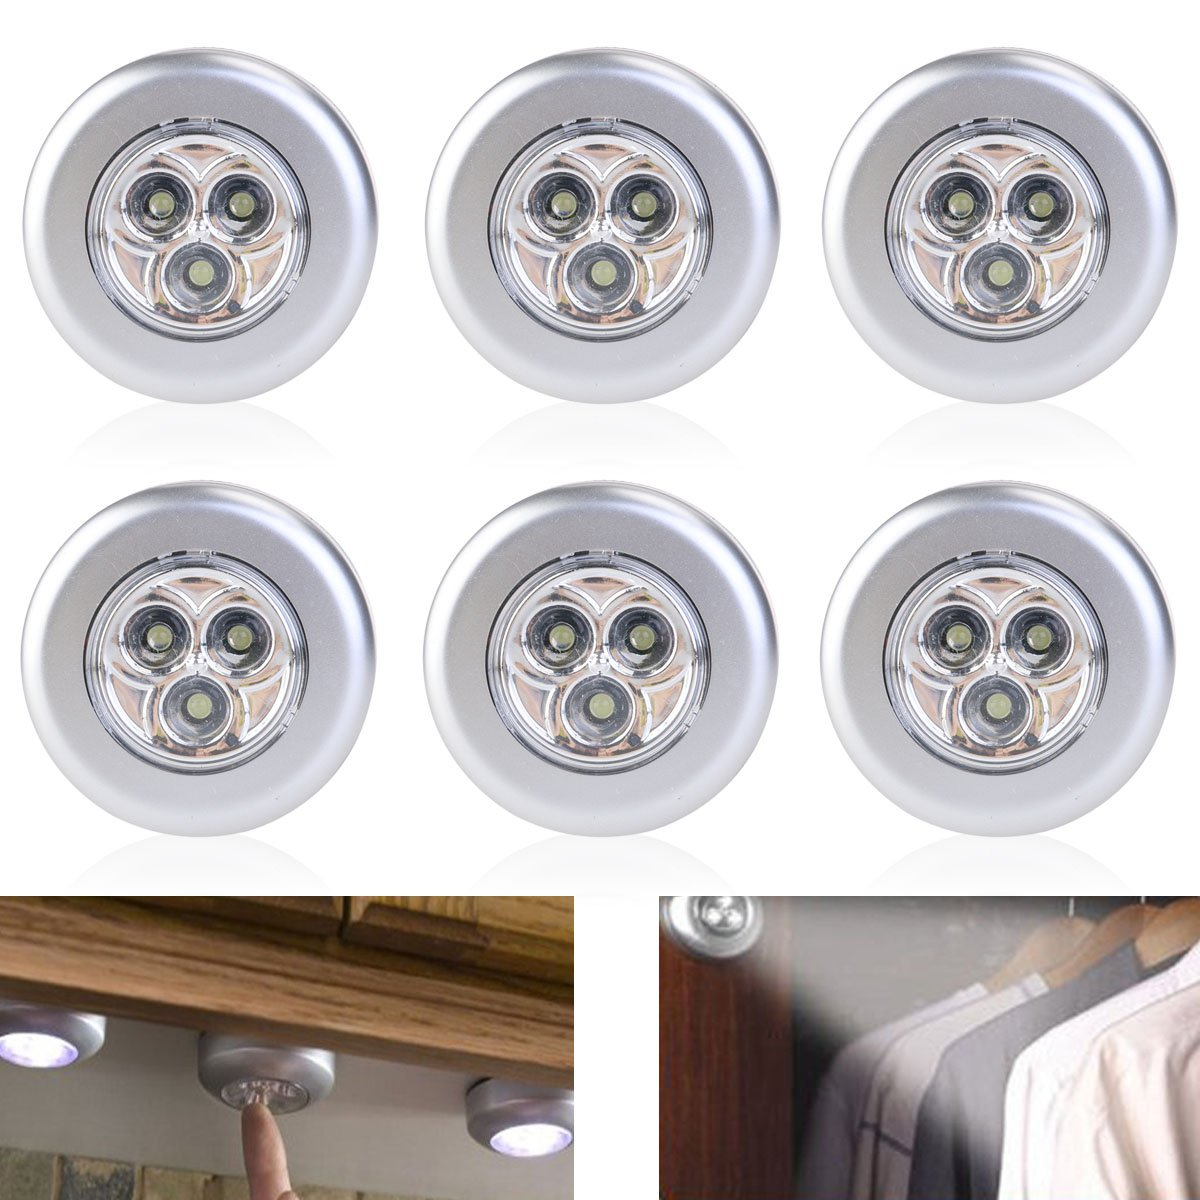 Tinksky Set of 6 Click Push LED Lamp Night Light Lamps Battery Operated Self-adhesive Kitchen Lights Cabinet Lights, White Light